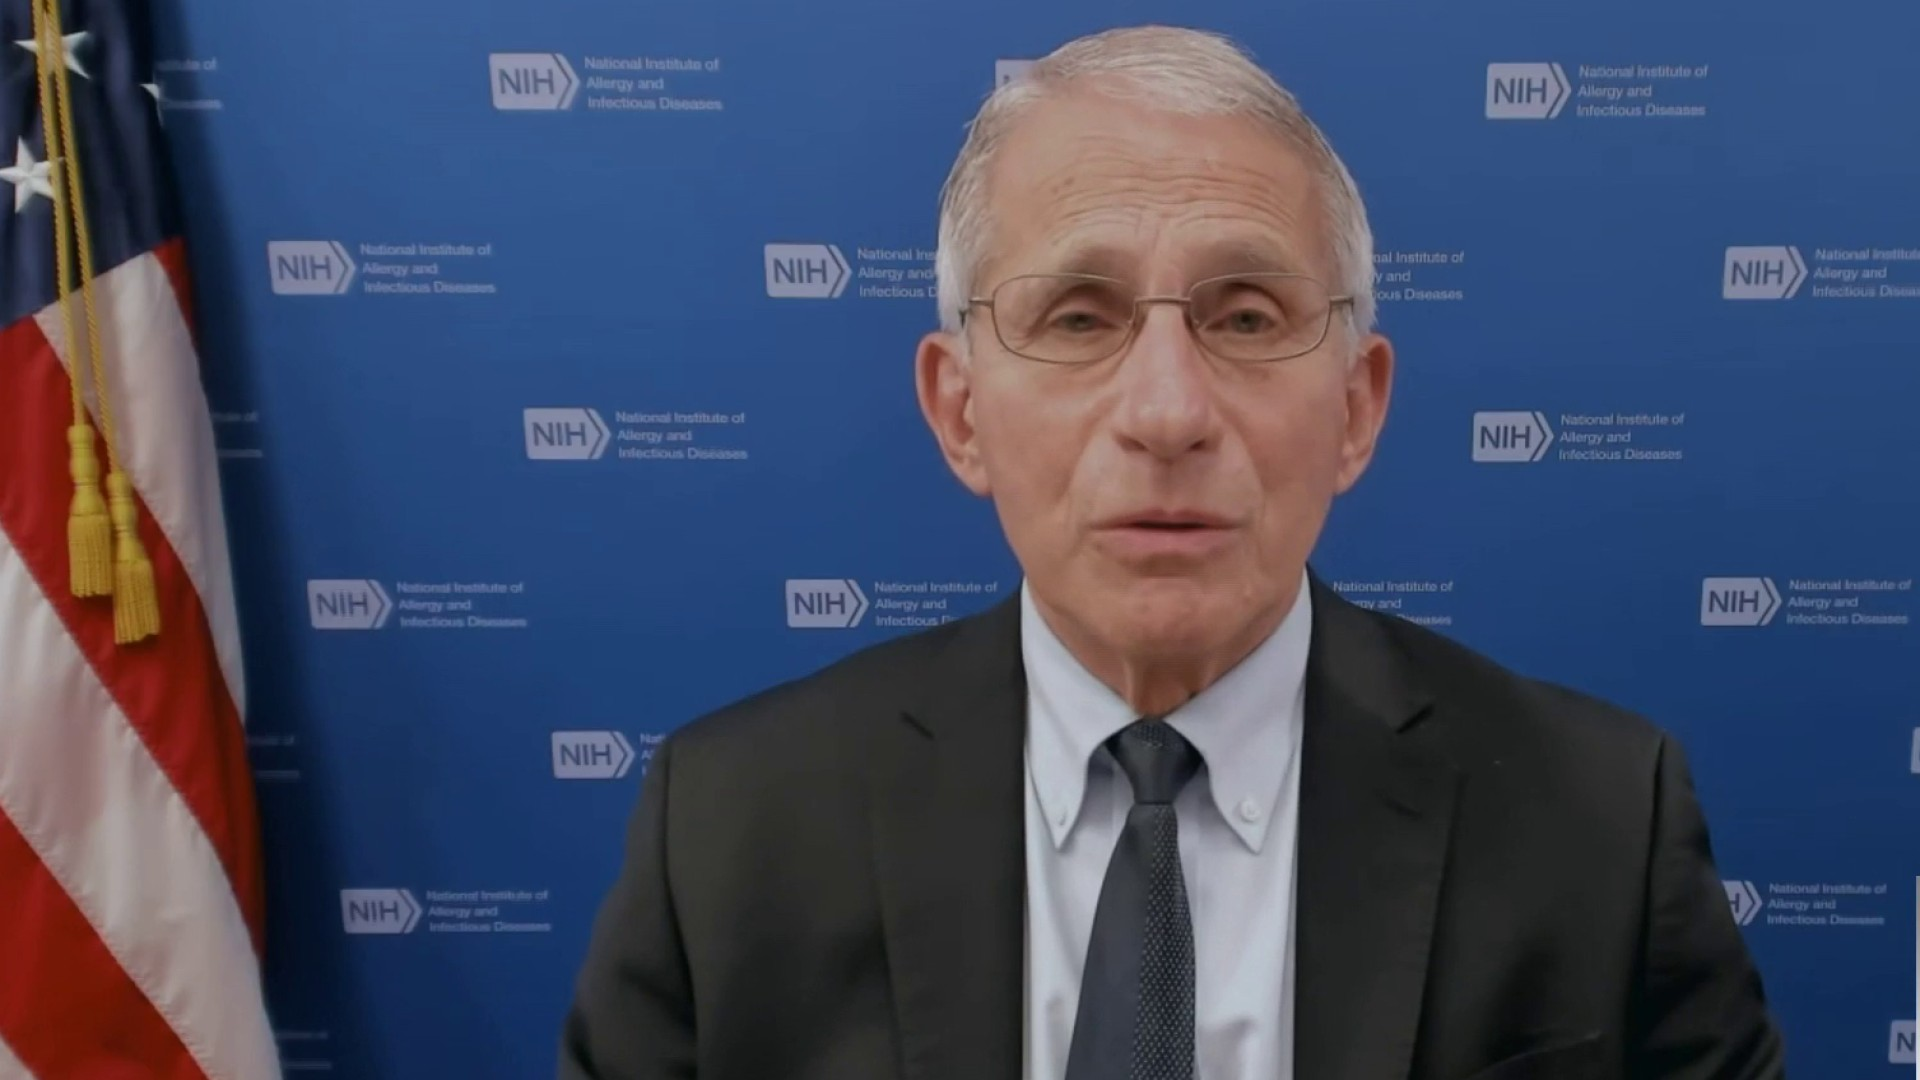 Dr. Fauci to unvaccinated: You're not in a vacuum; you're part of society